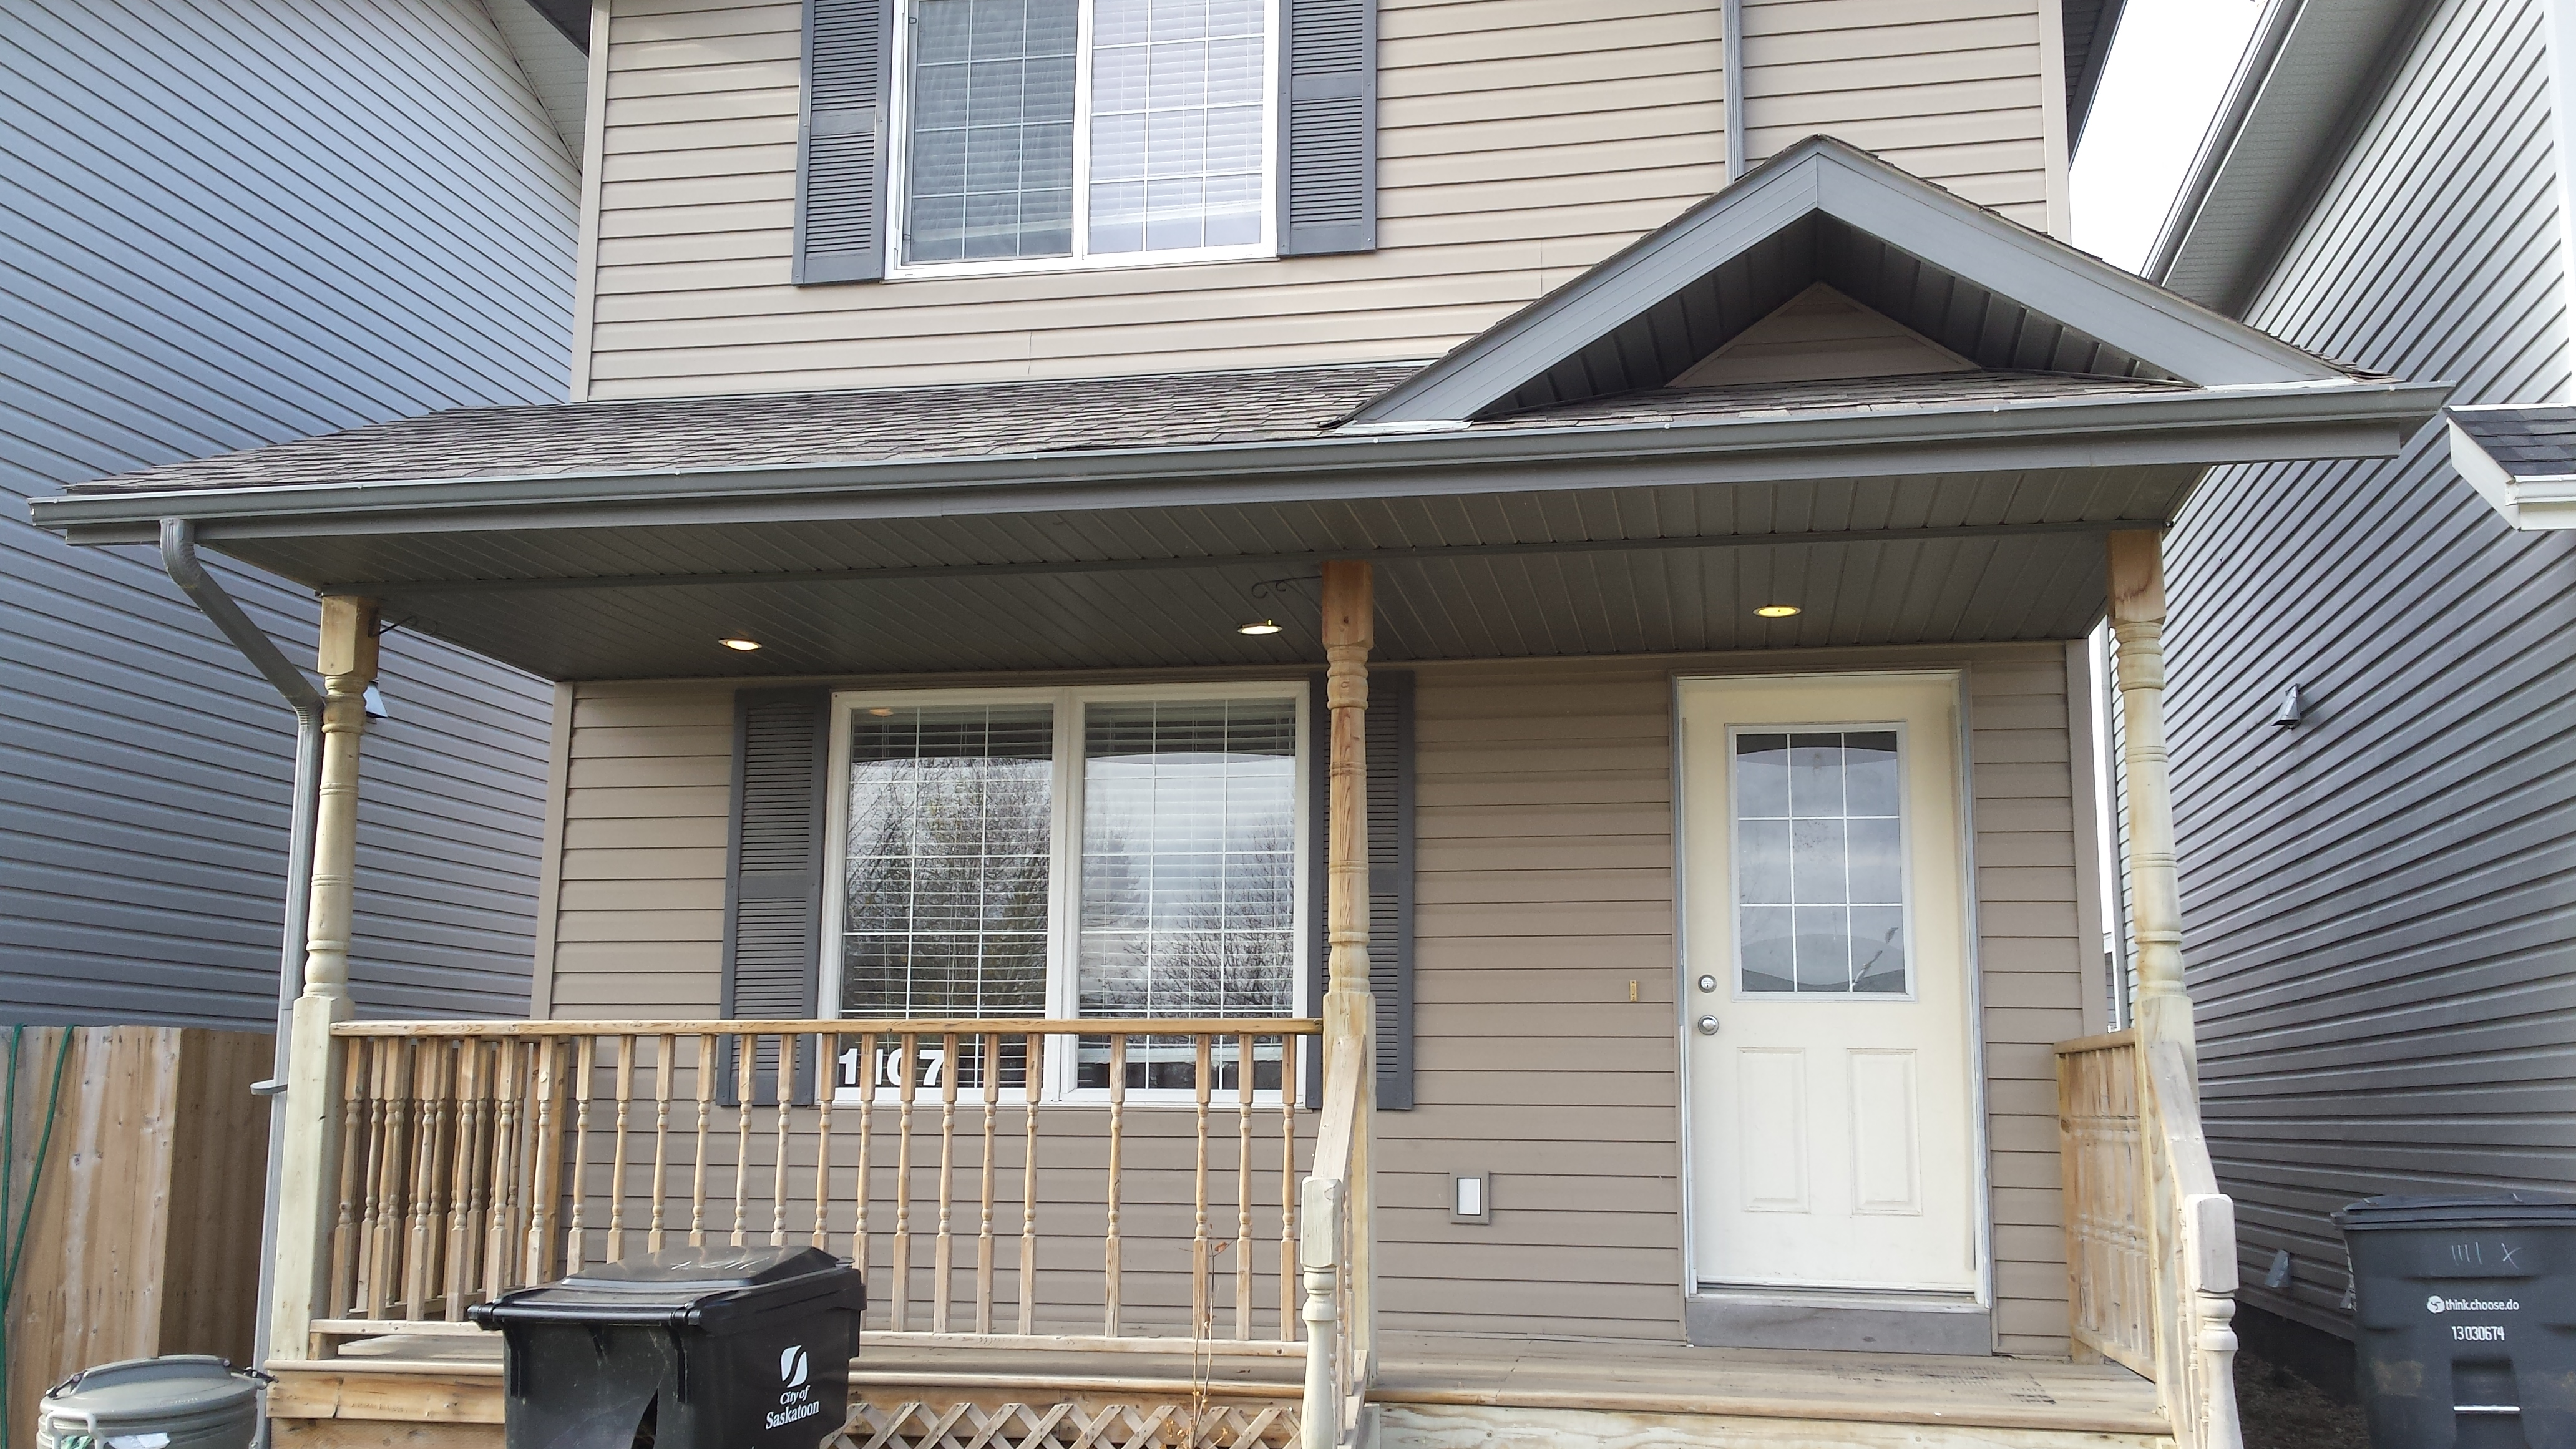 3 Beds & 1.5 Baths House in Confederation Area (Available Mar 1, 2019)